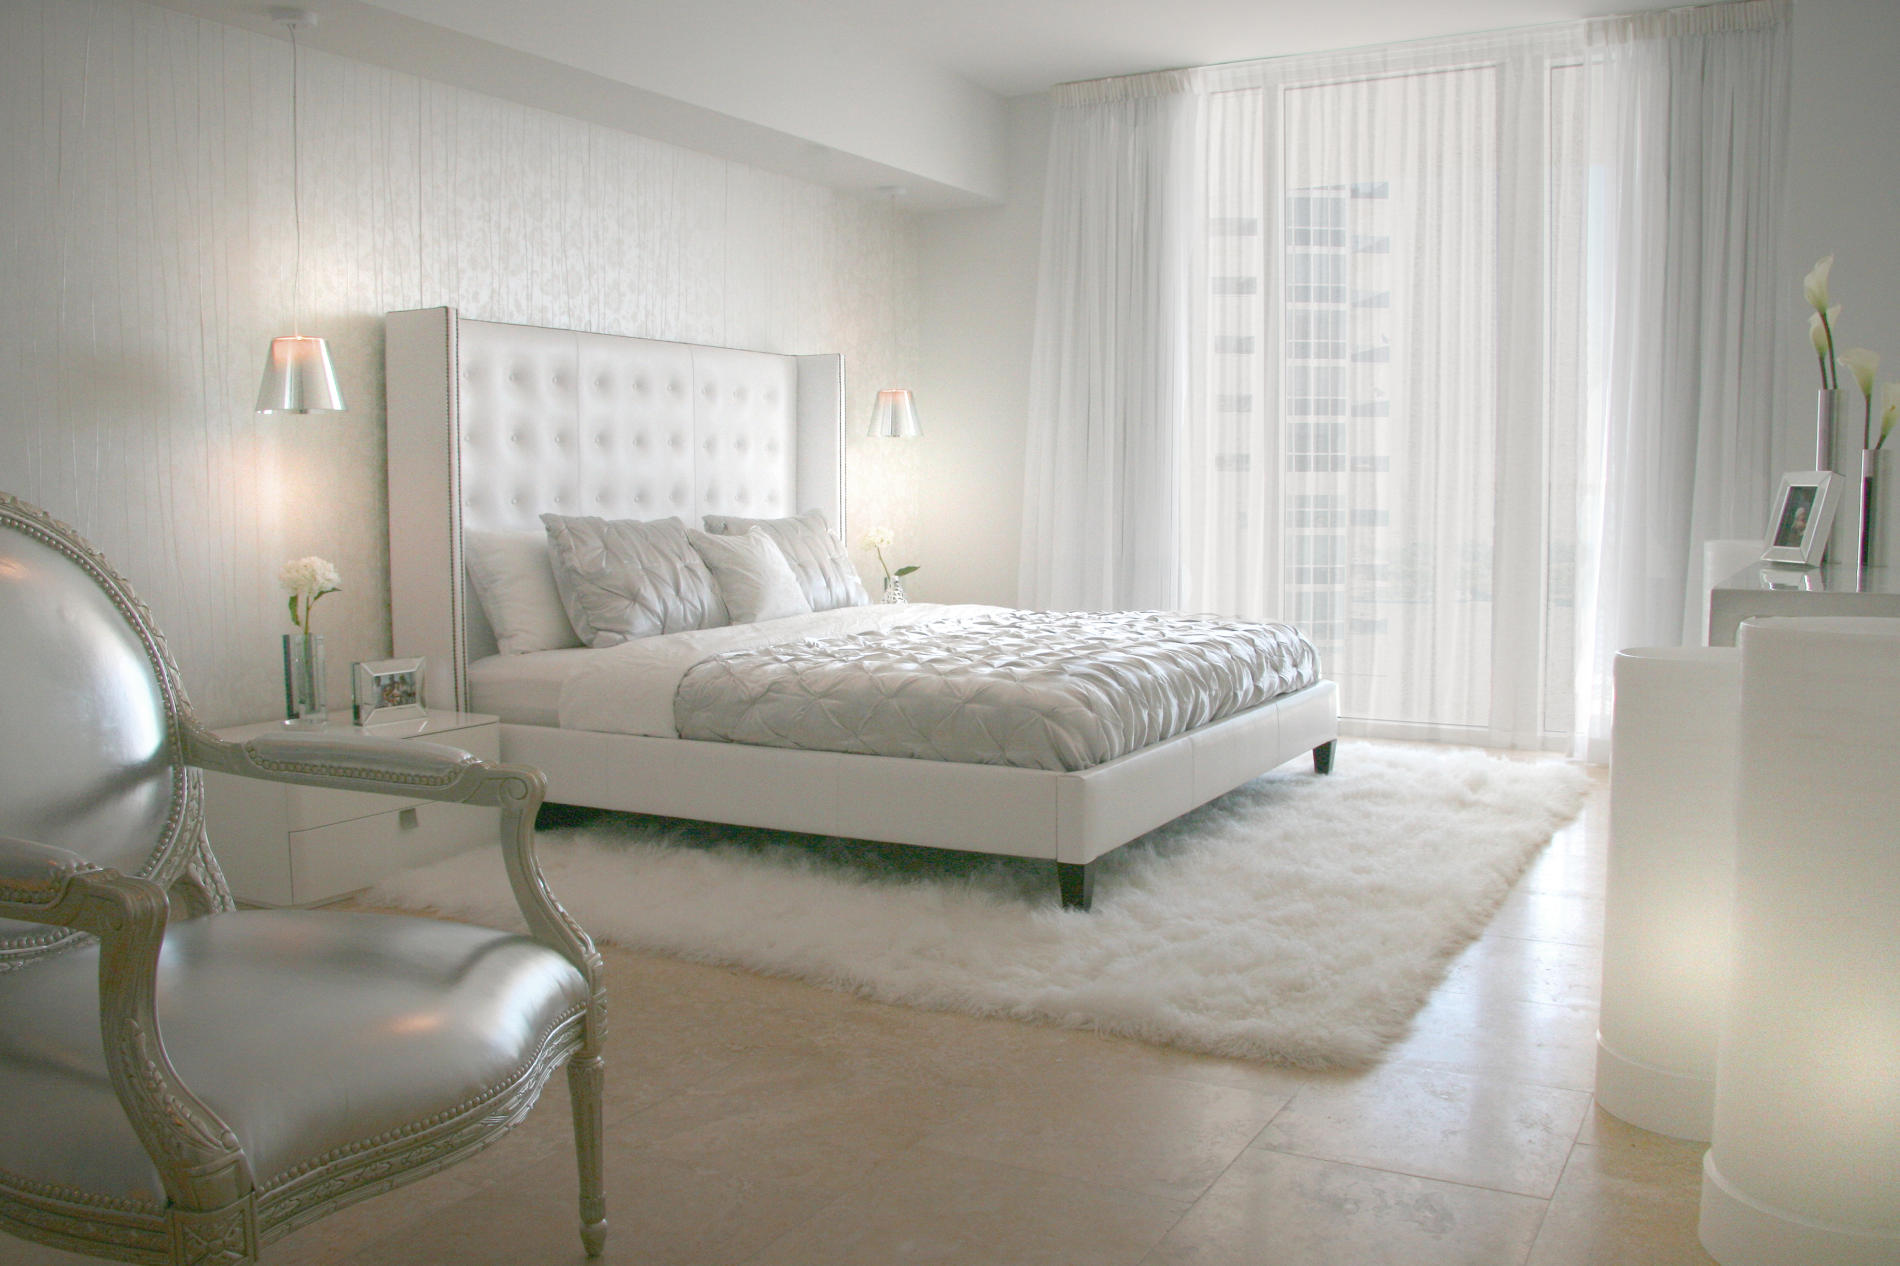 Ordinaire White Bedroom Window Treatments